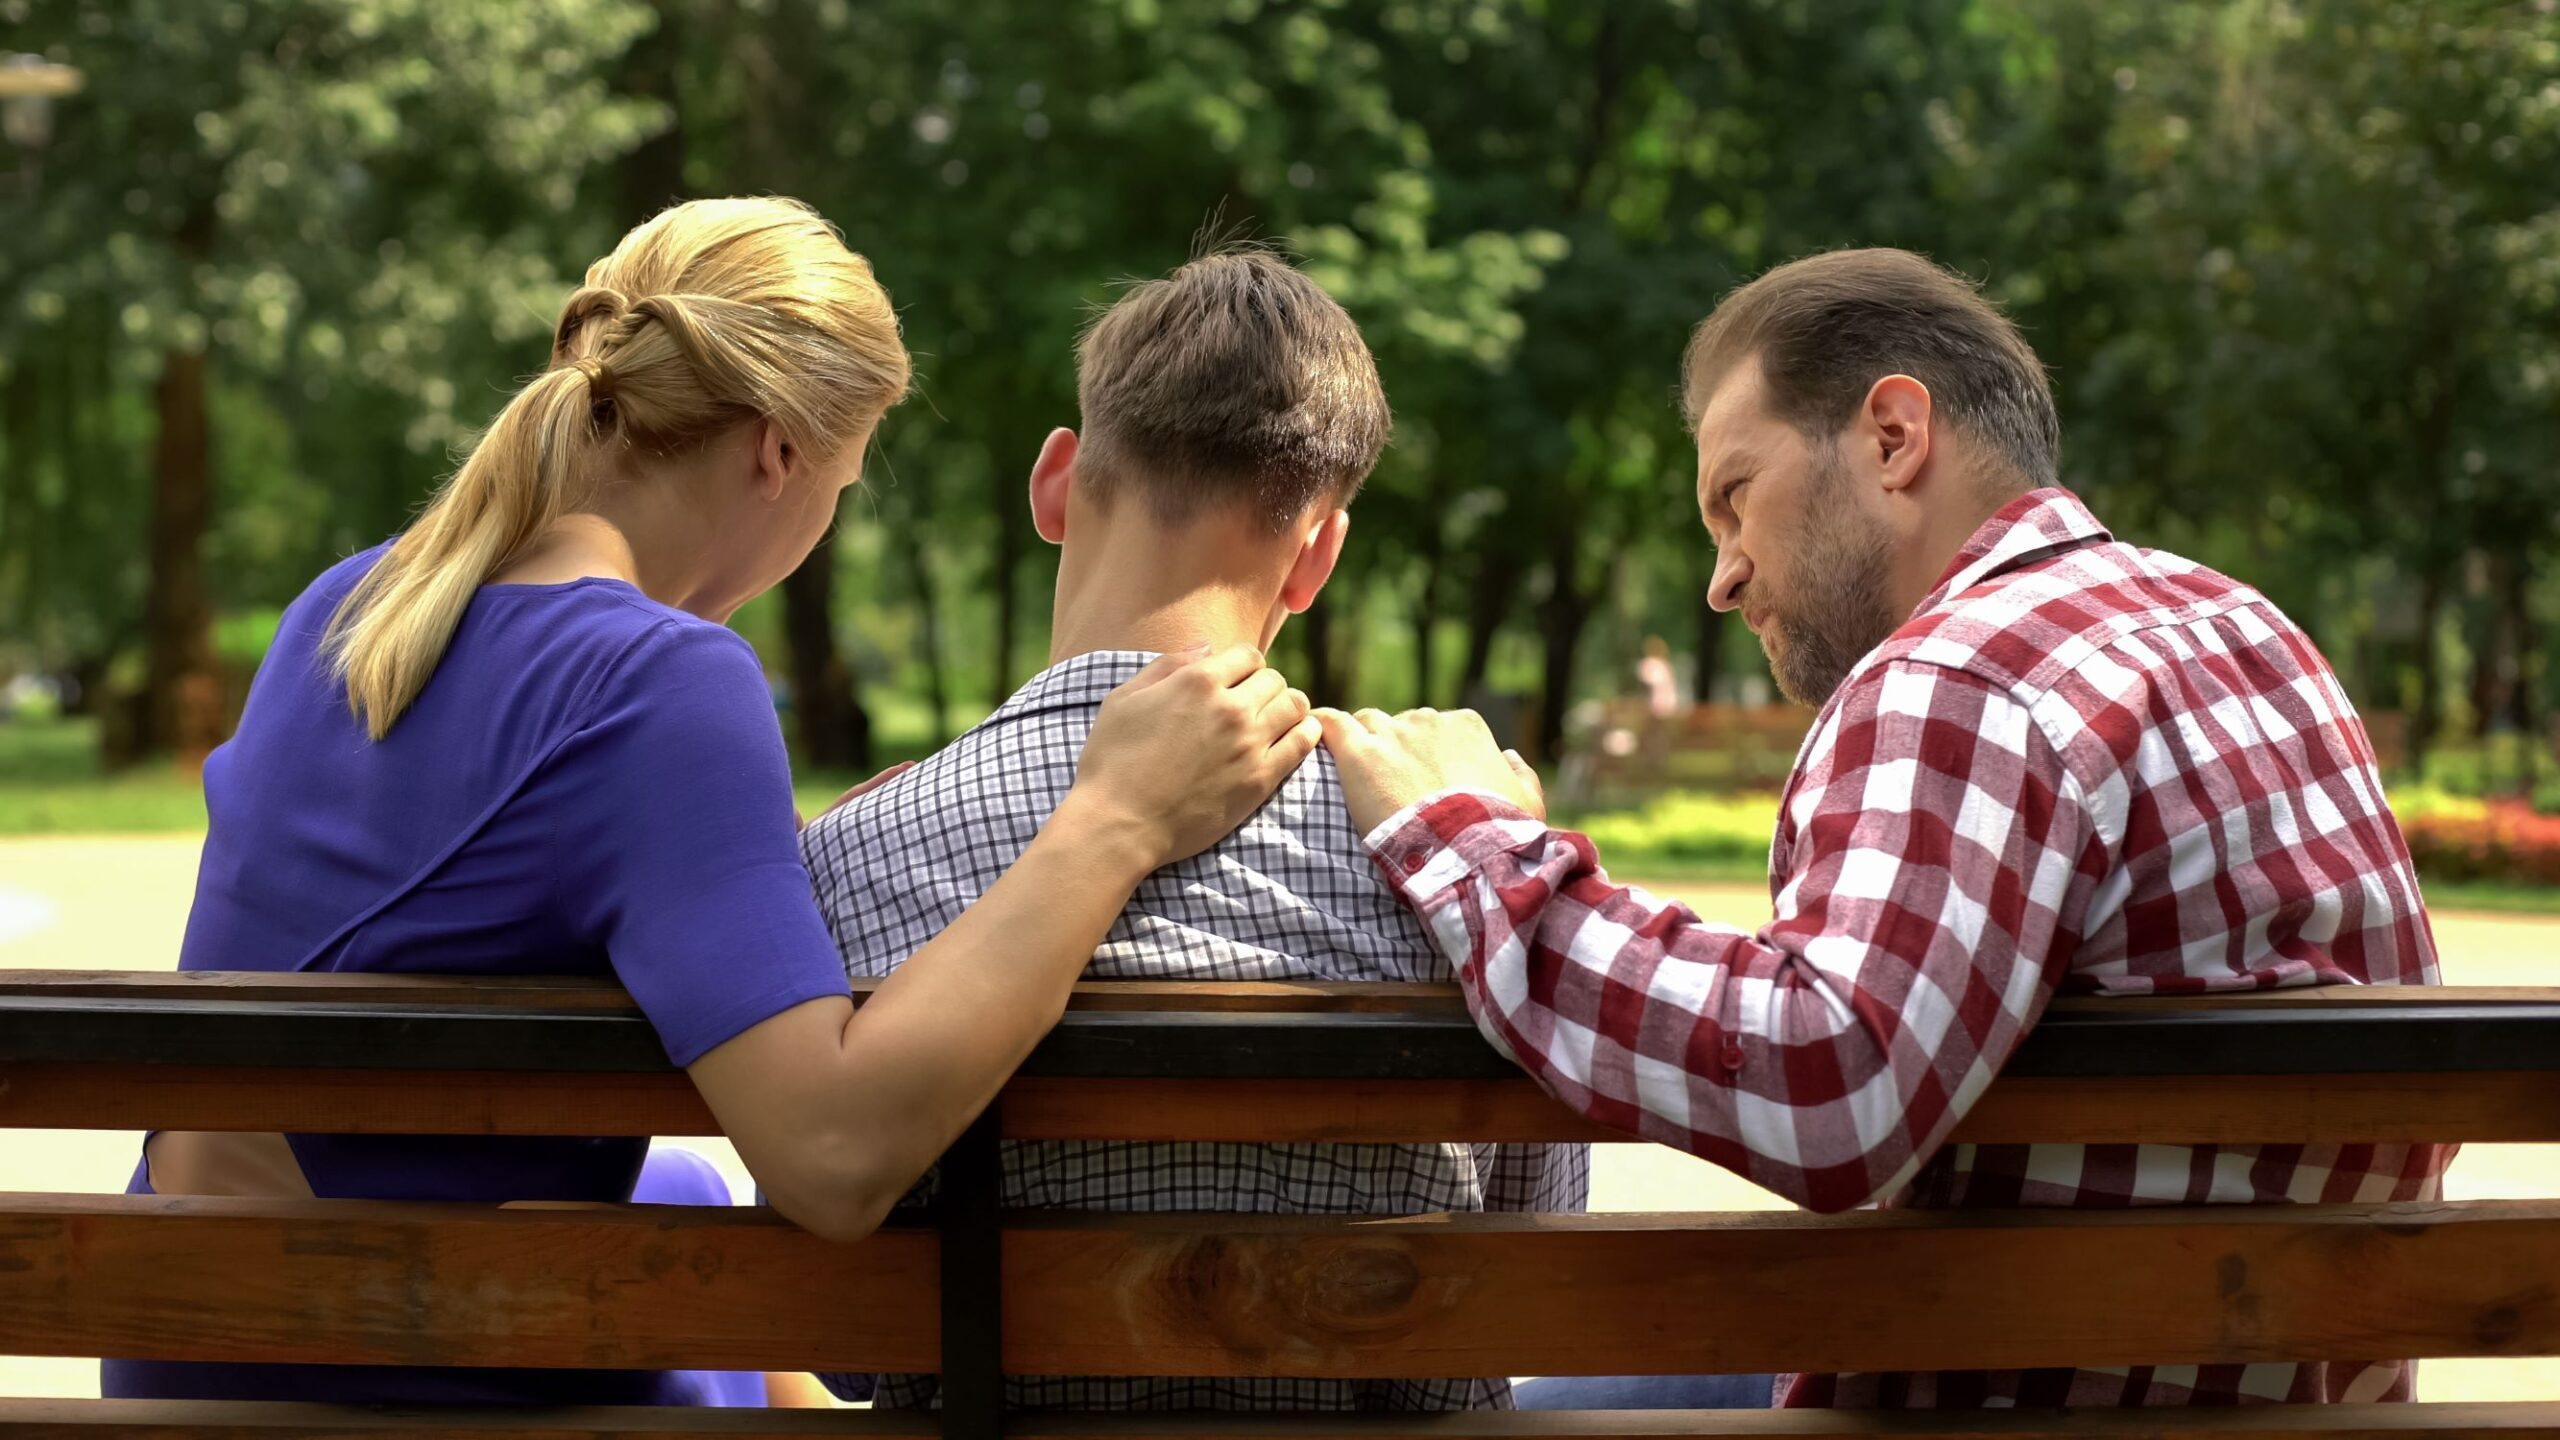 Parents sitting with son on an outdoor bench talking